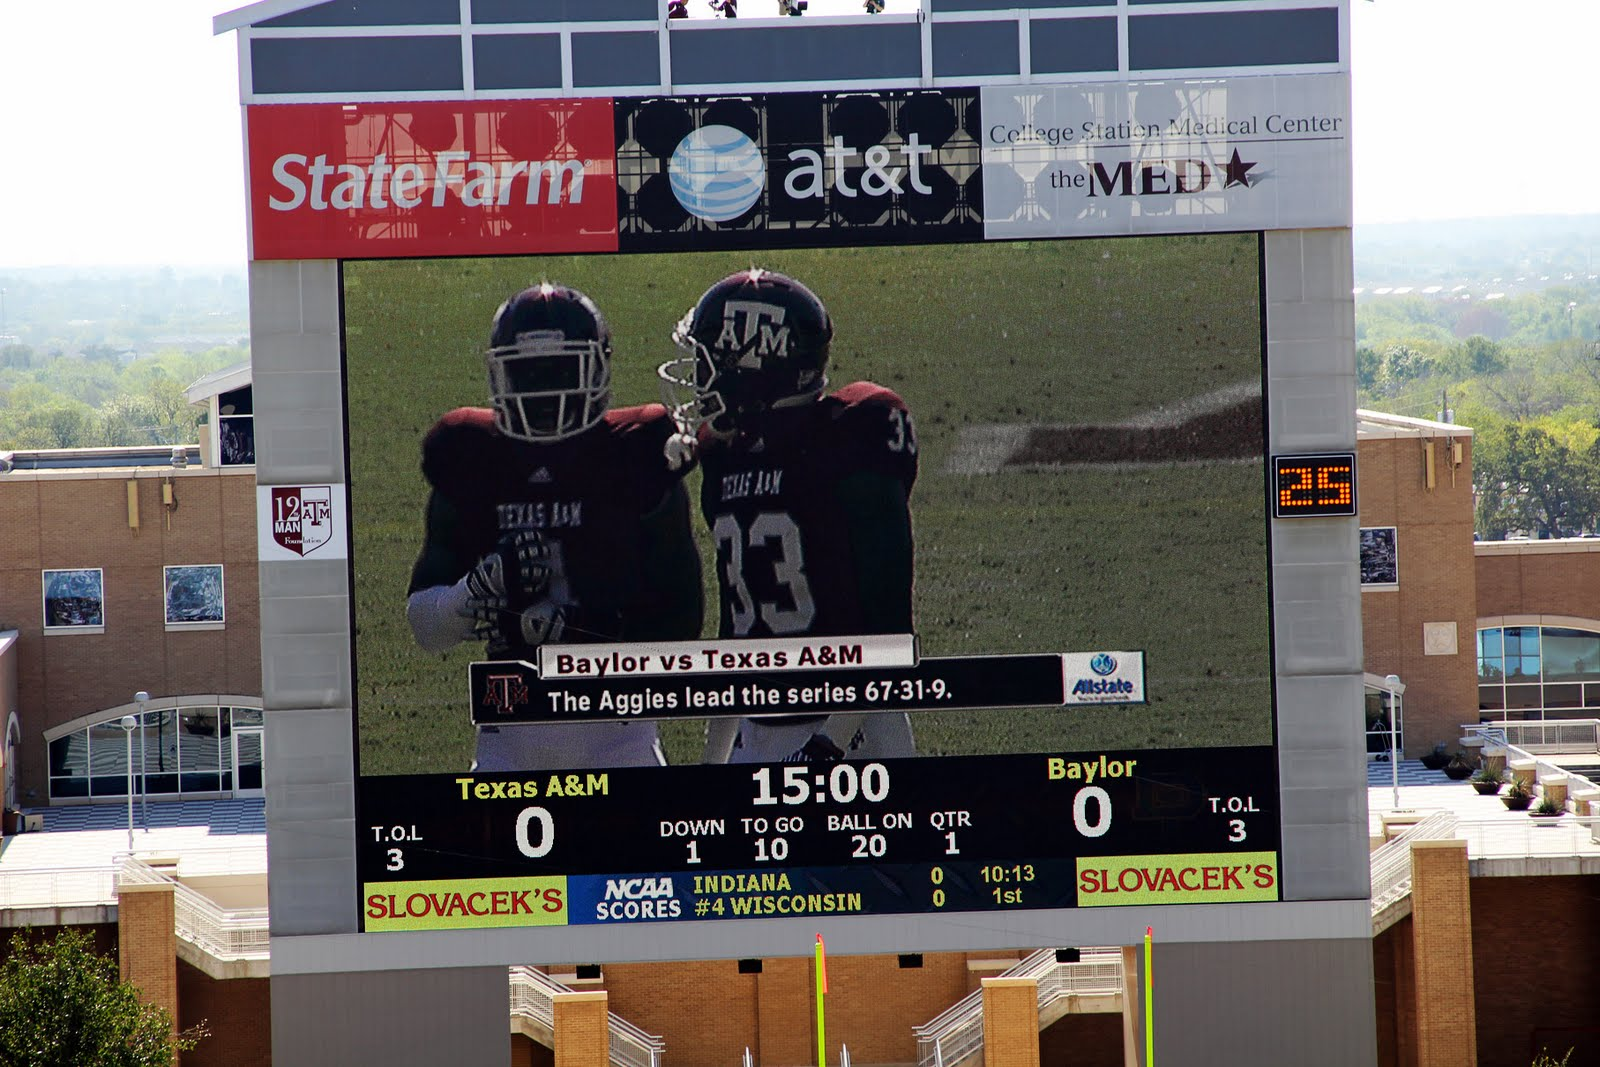 jumbotron Ags lead series